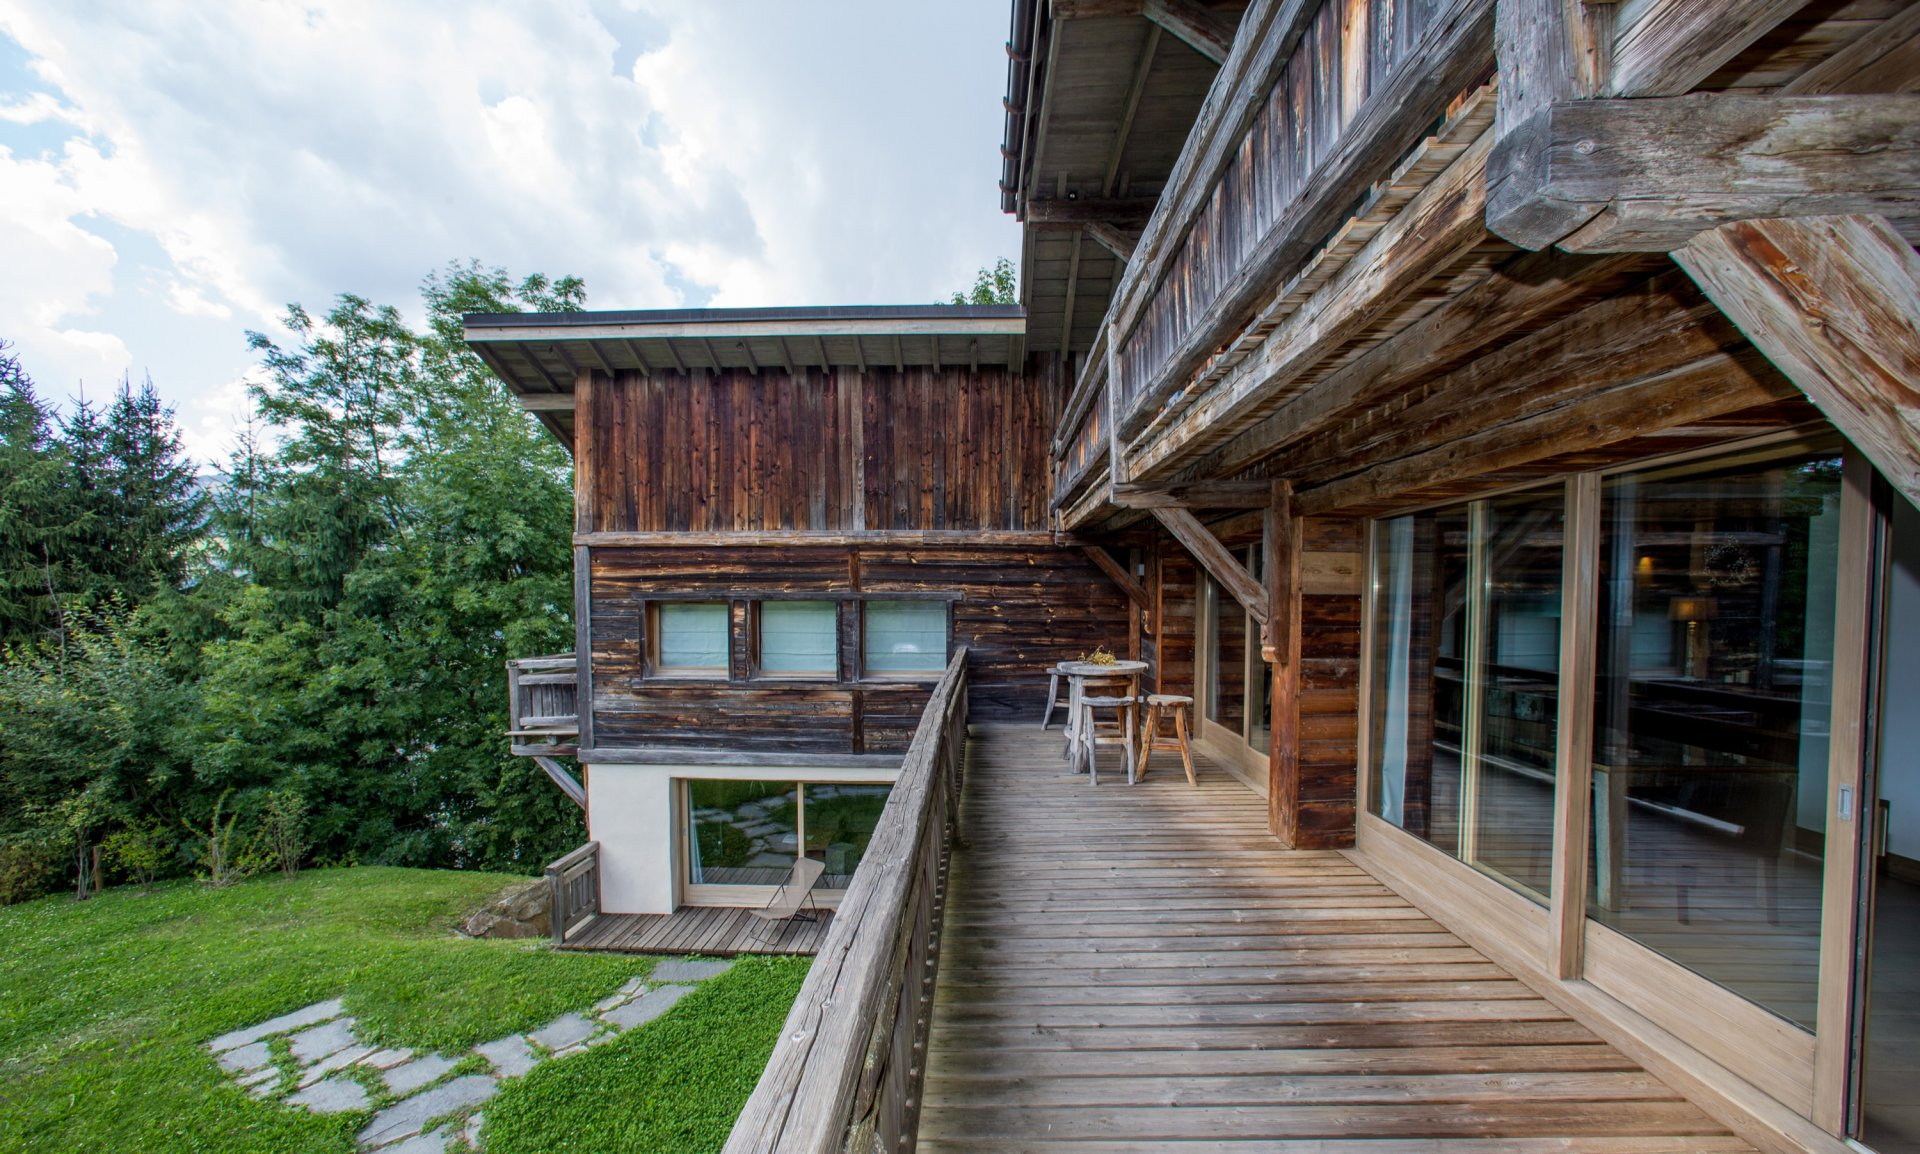 The Apartment-Chalet Chalet in Megeve